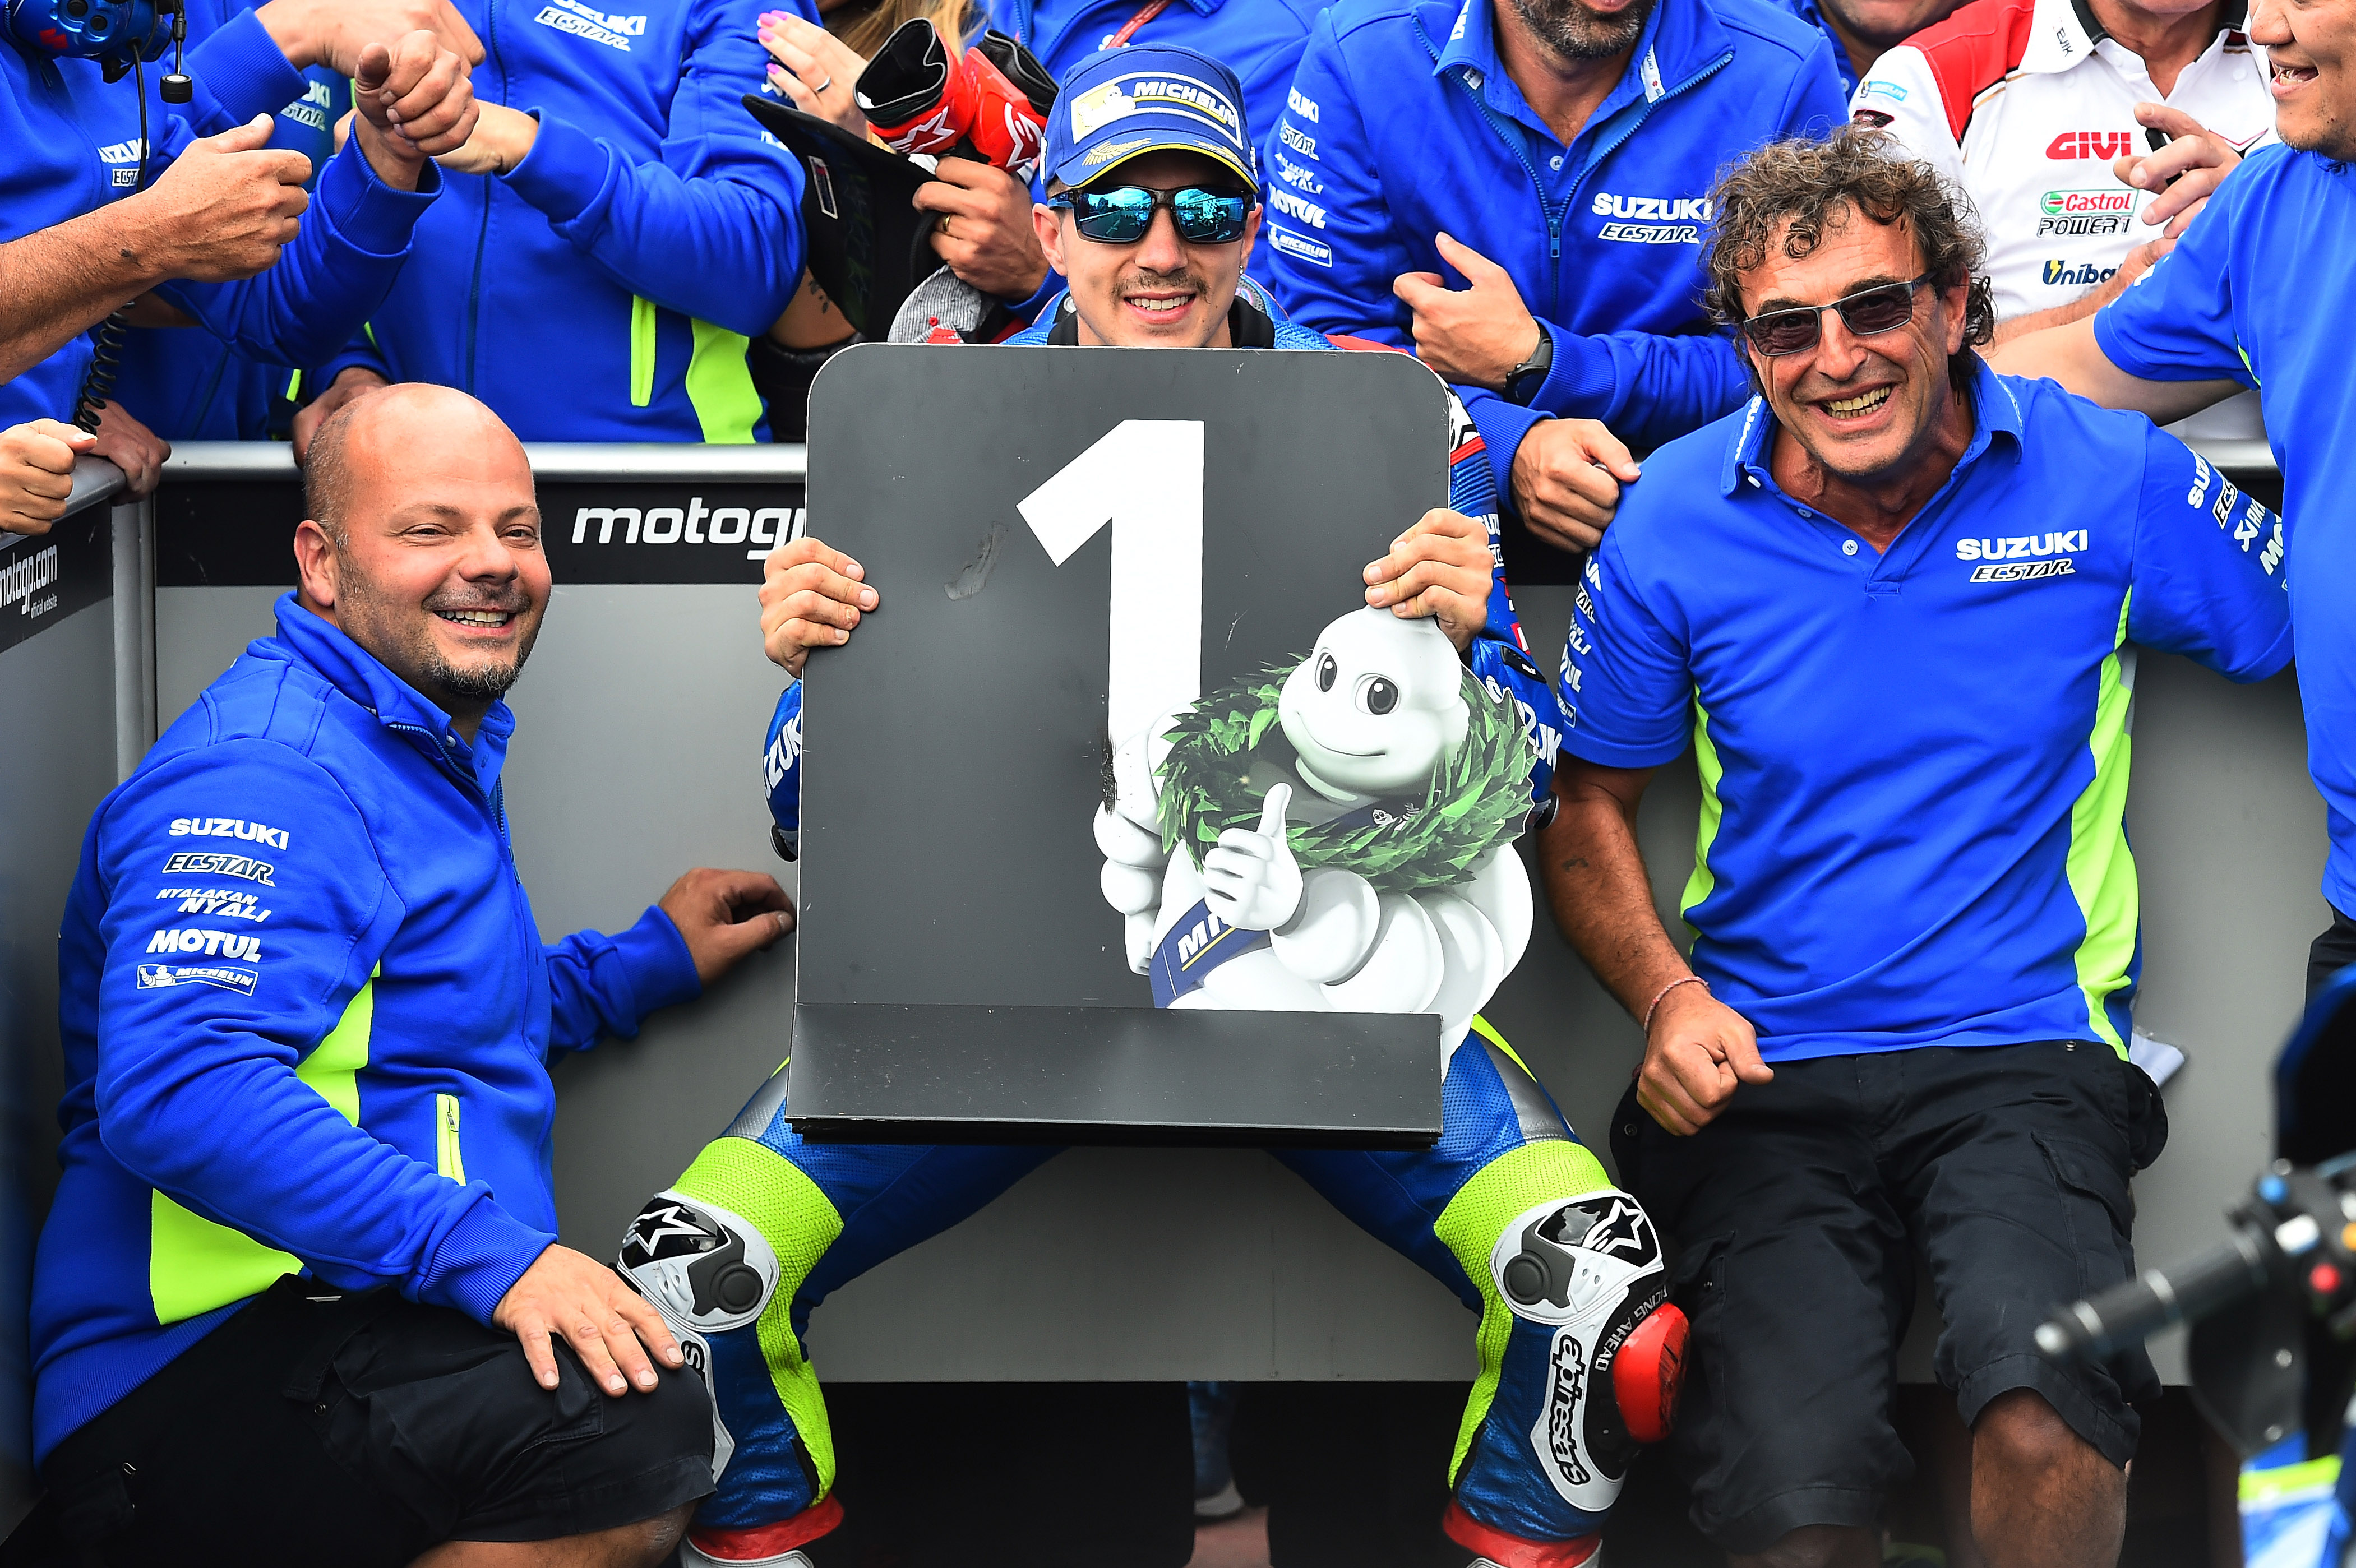 Michelin and Suzuki score Silverstone success as vinales is victorious (2)